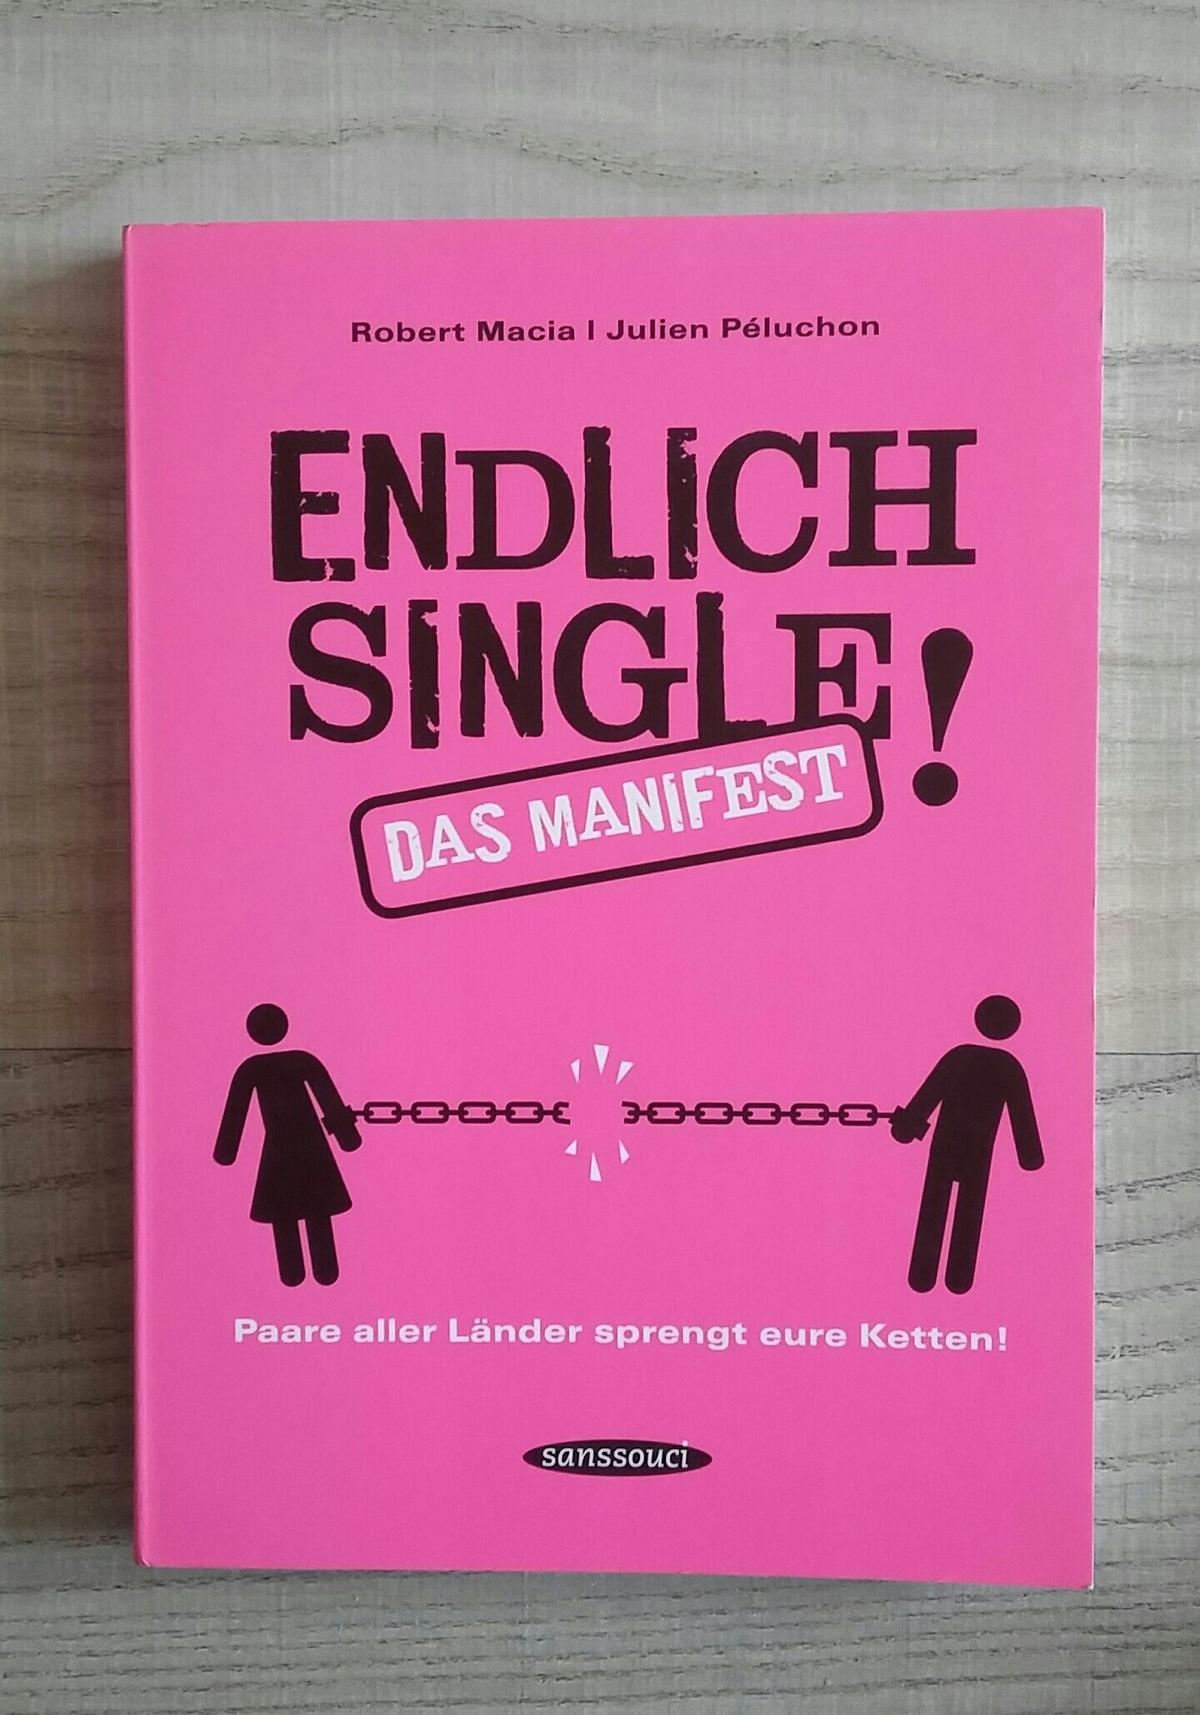 Reiche single mnner aus reiterndorf: Buch in tirol single studenten